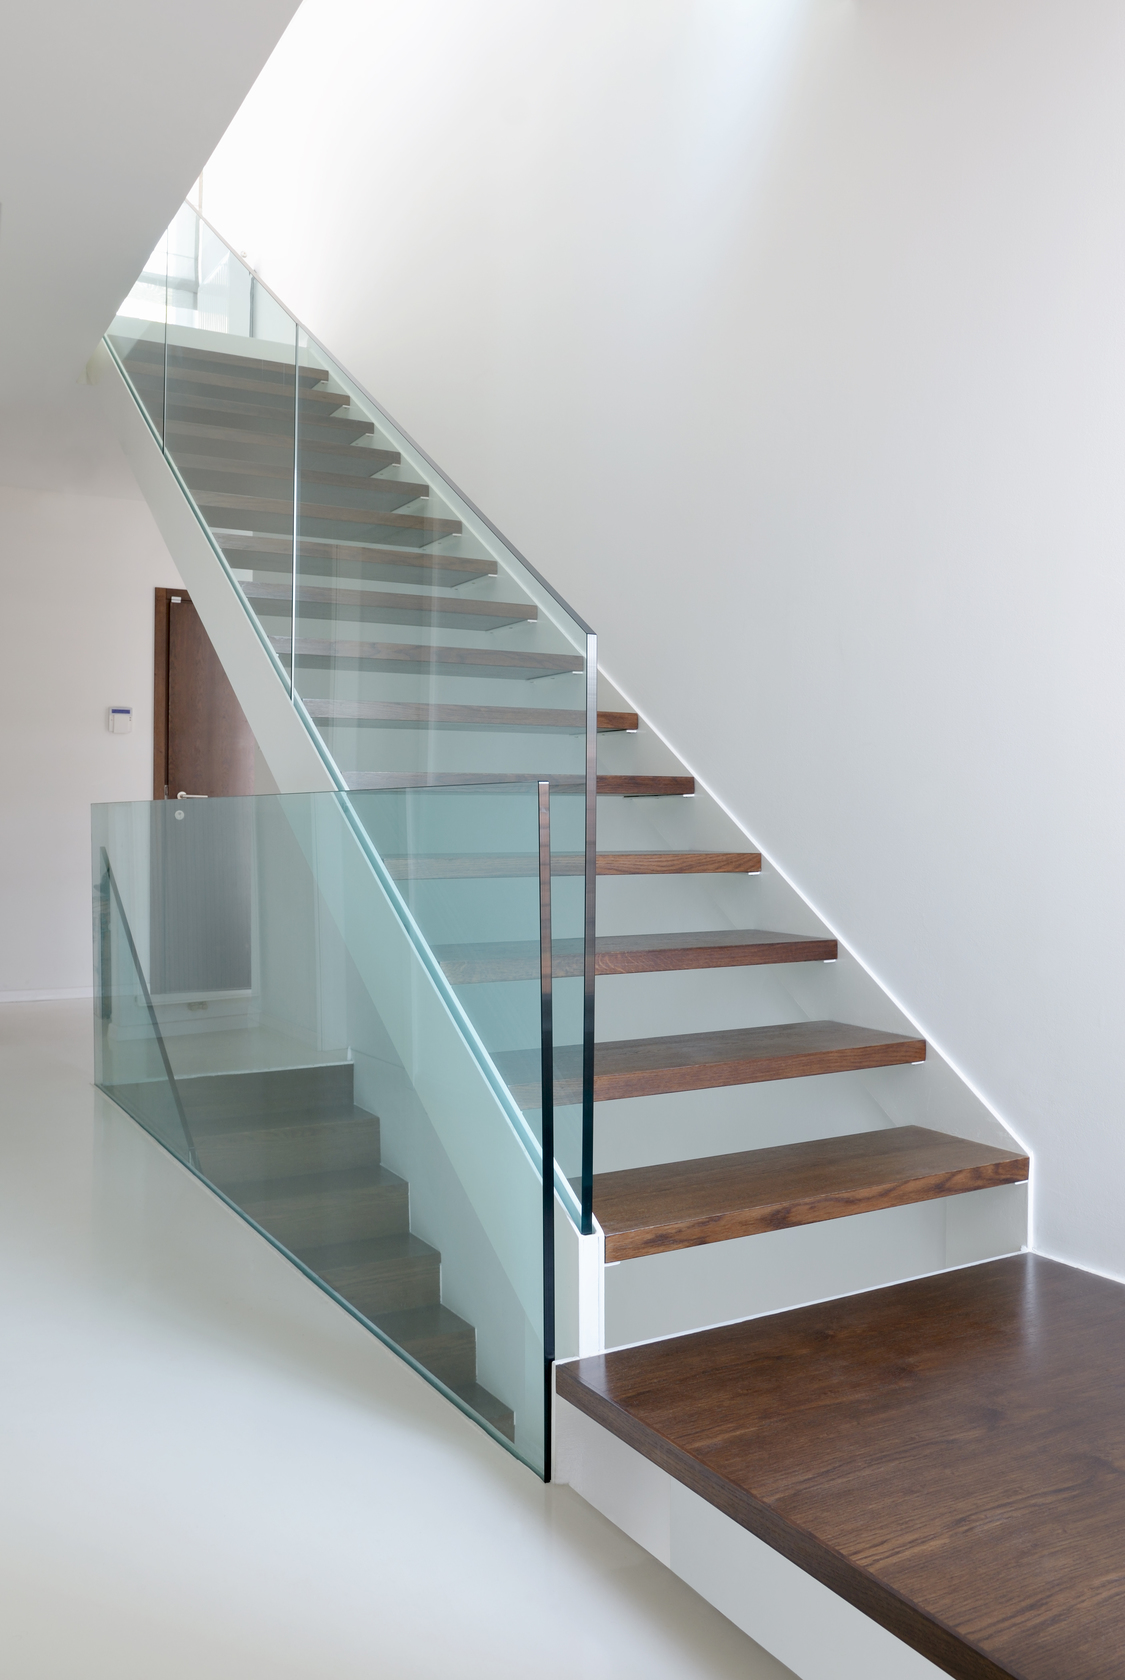 Balustrades: An Important Architectural Element at Home